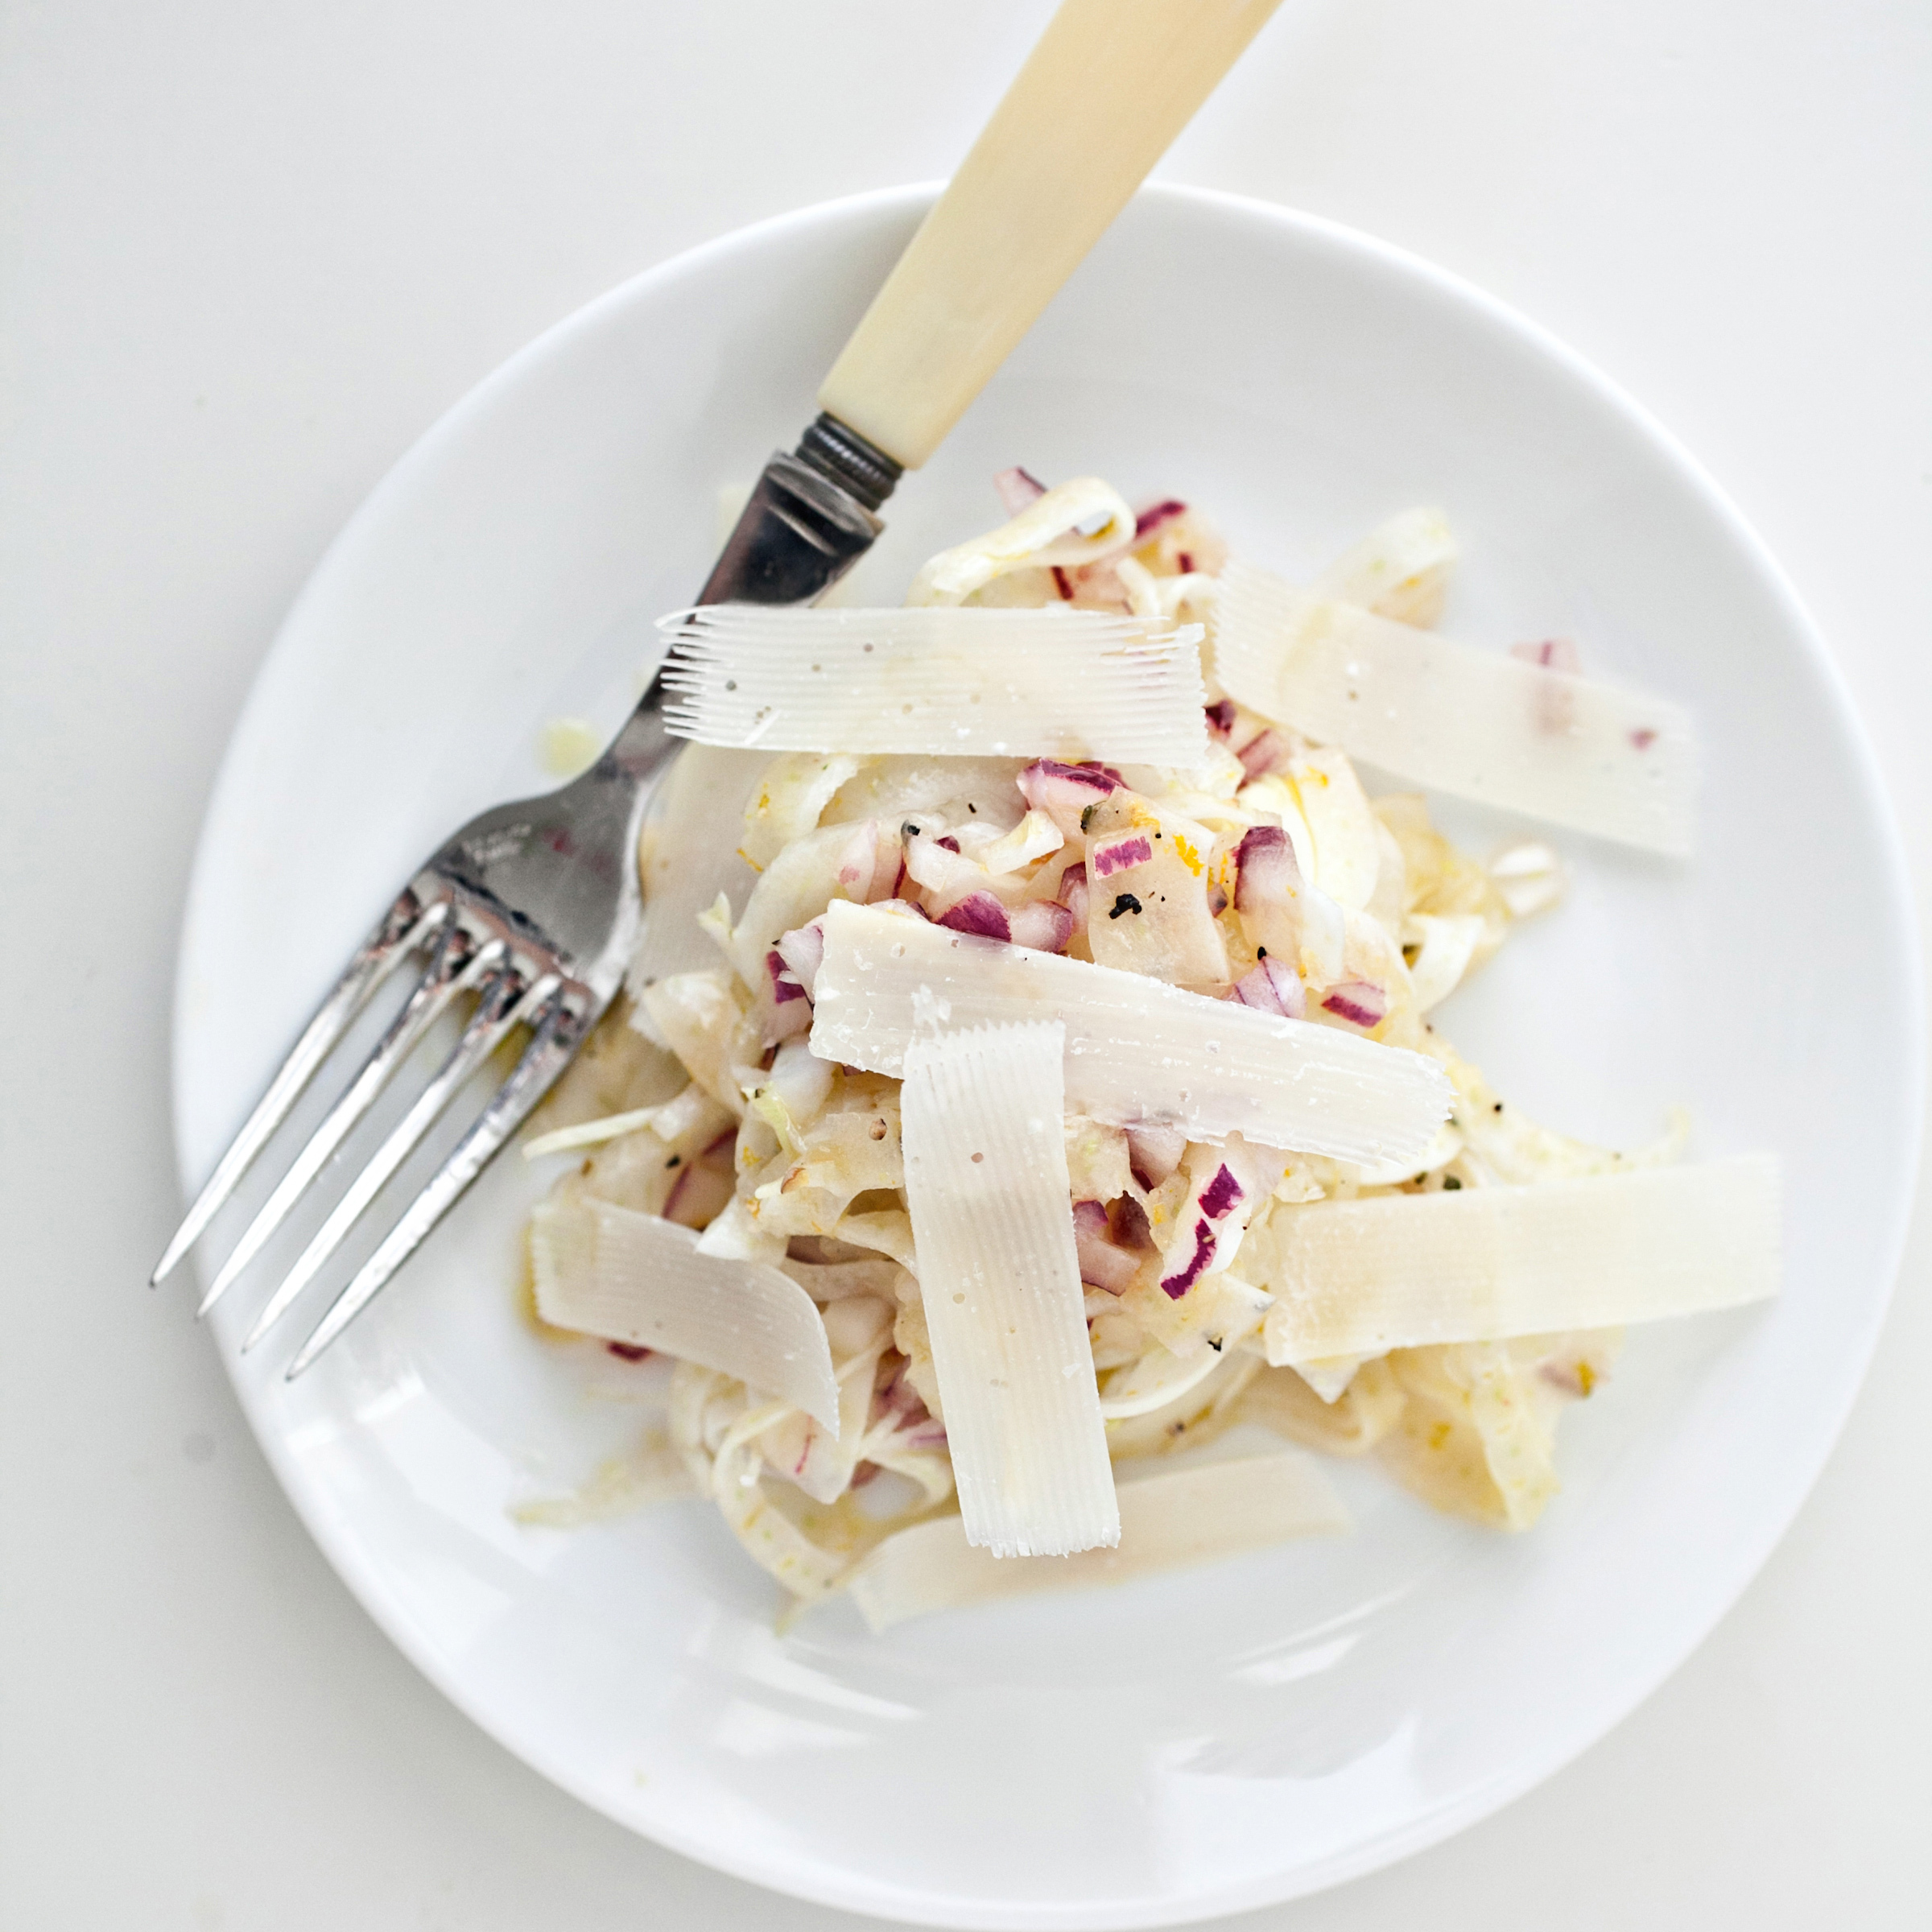 Fennel and Red-Onion Salad with Parmesan